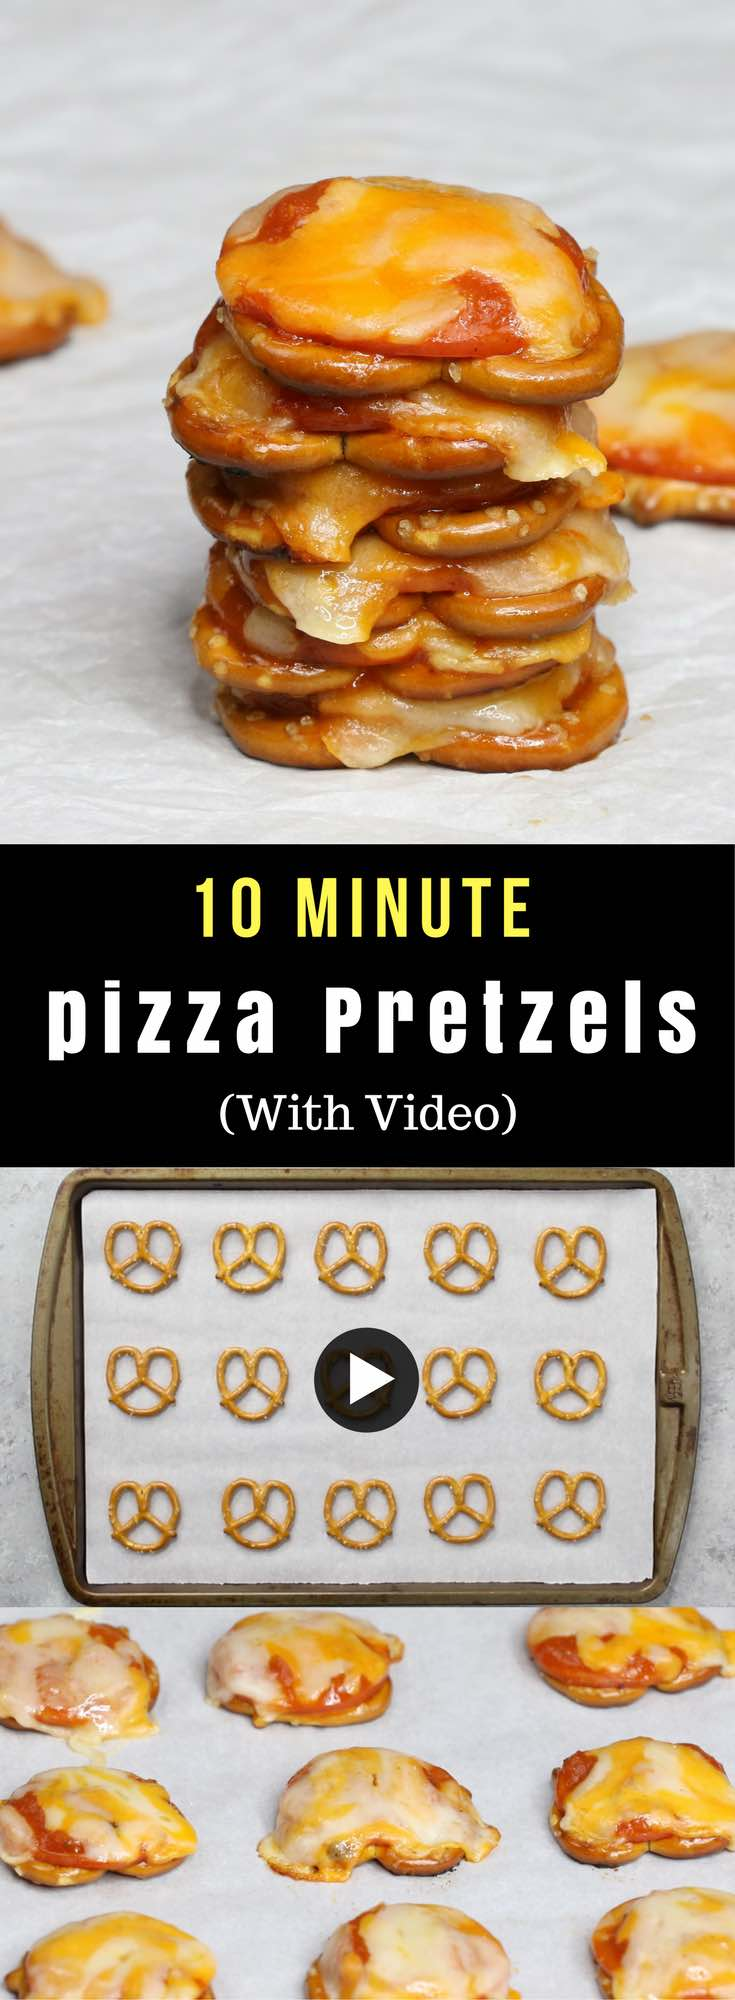 Pizza Pretzels – only 4 ingredients and 10 minutes. Super easy and perfect for an after school snack! All you need is 4 simple ingredients: pretzels, pepperoni, pasta sauce and shredded mozzarella. Quick and easy recipe. Video recipe. | Tipbuzz.com